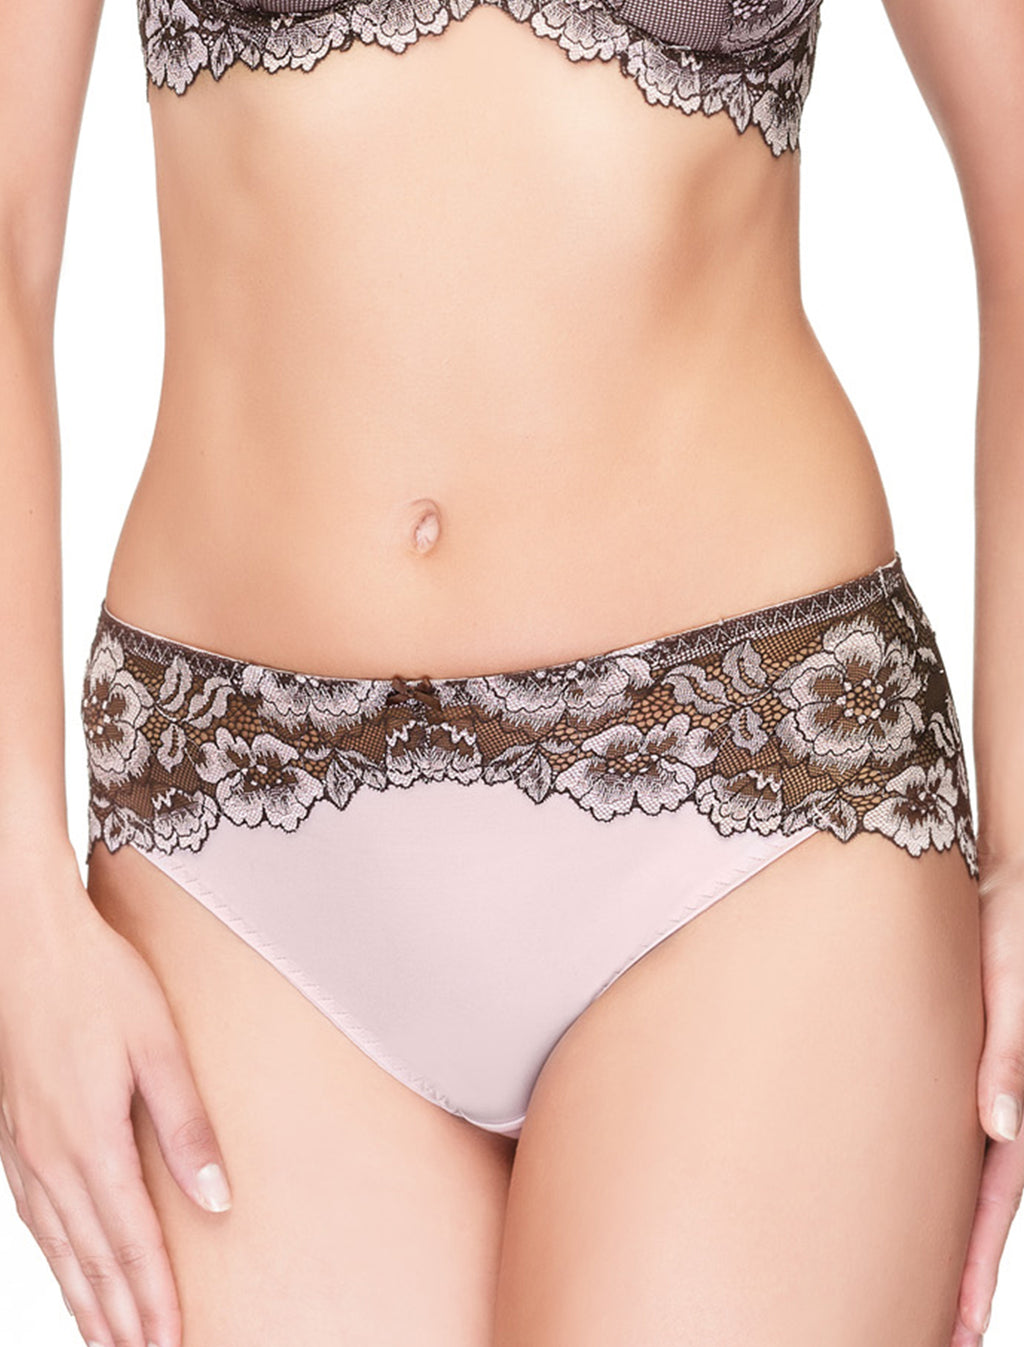 Lauma, Brown Mid Waist Lace Panties, On Model Front, 35H50